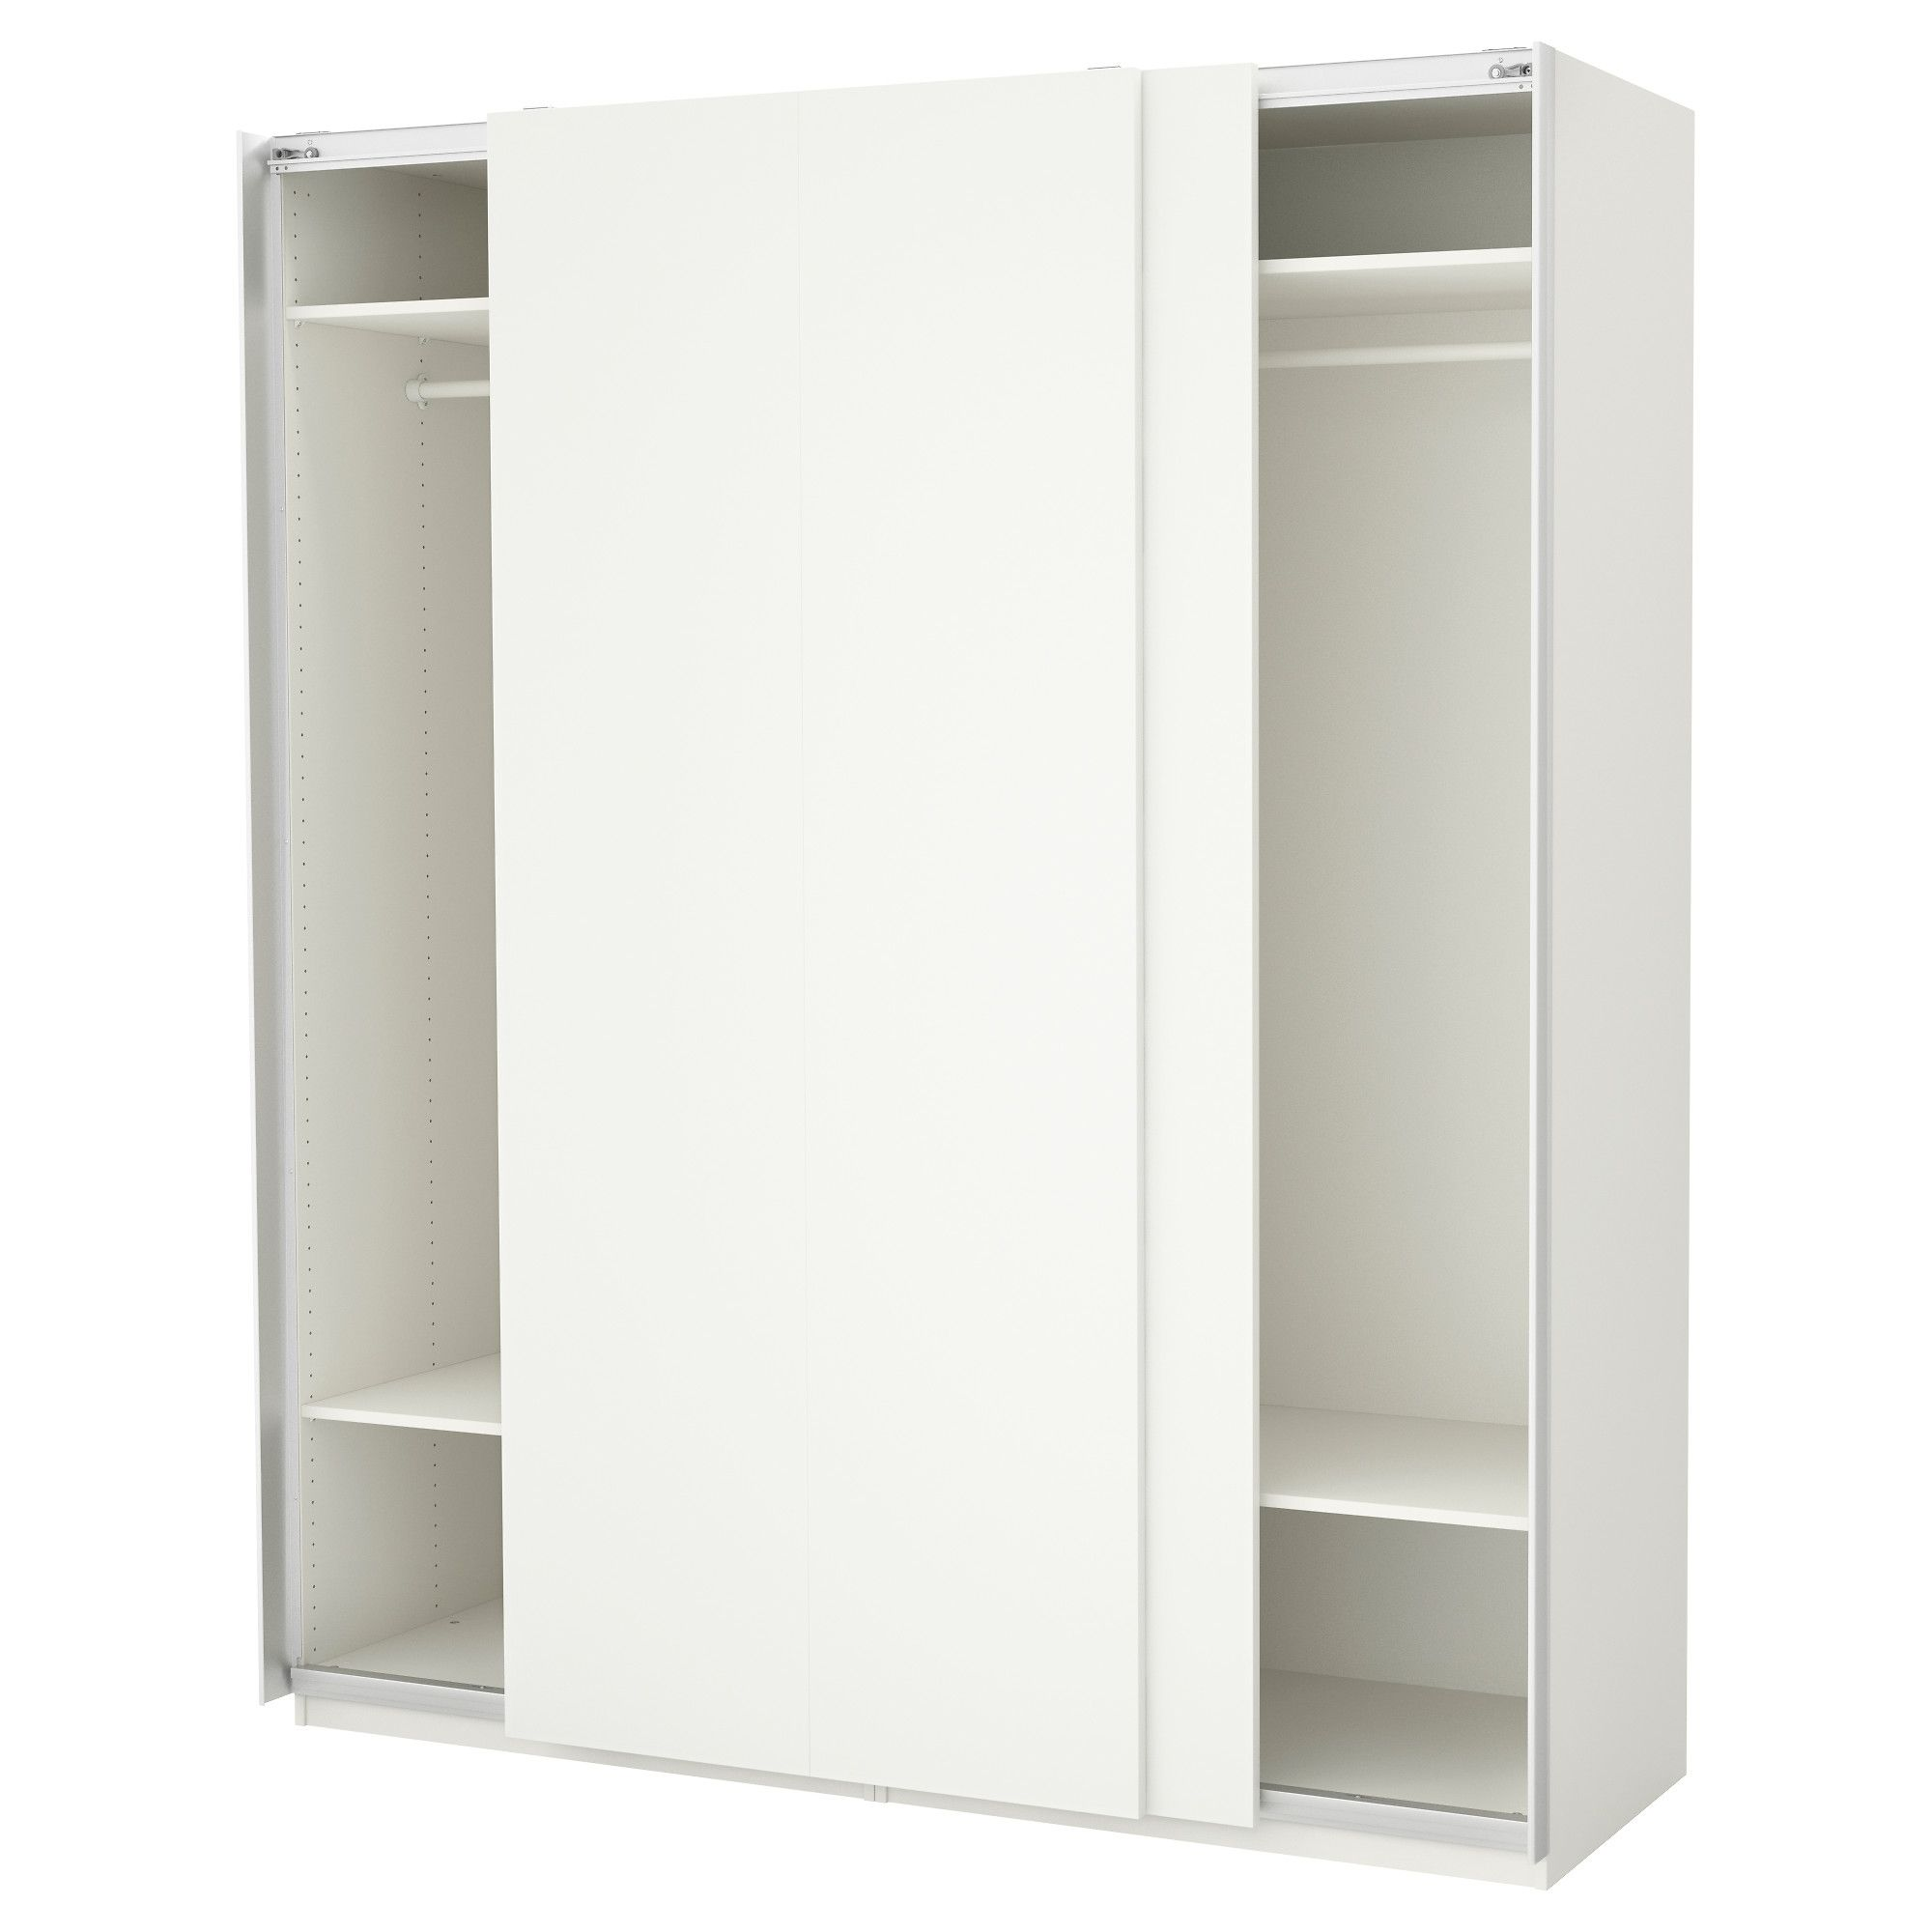 read about sekken products fitted frosted en in white glass wardrobes spr ikea guarantee terms year the pax brochure gb wardrobe cm